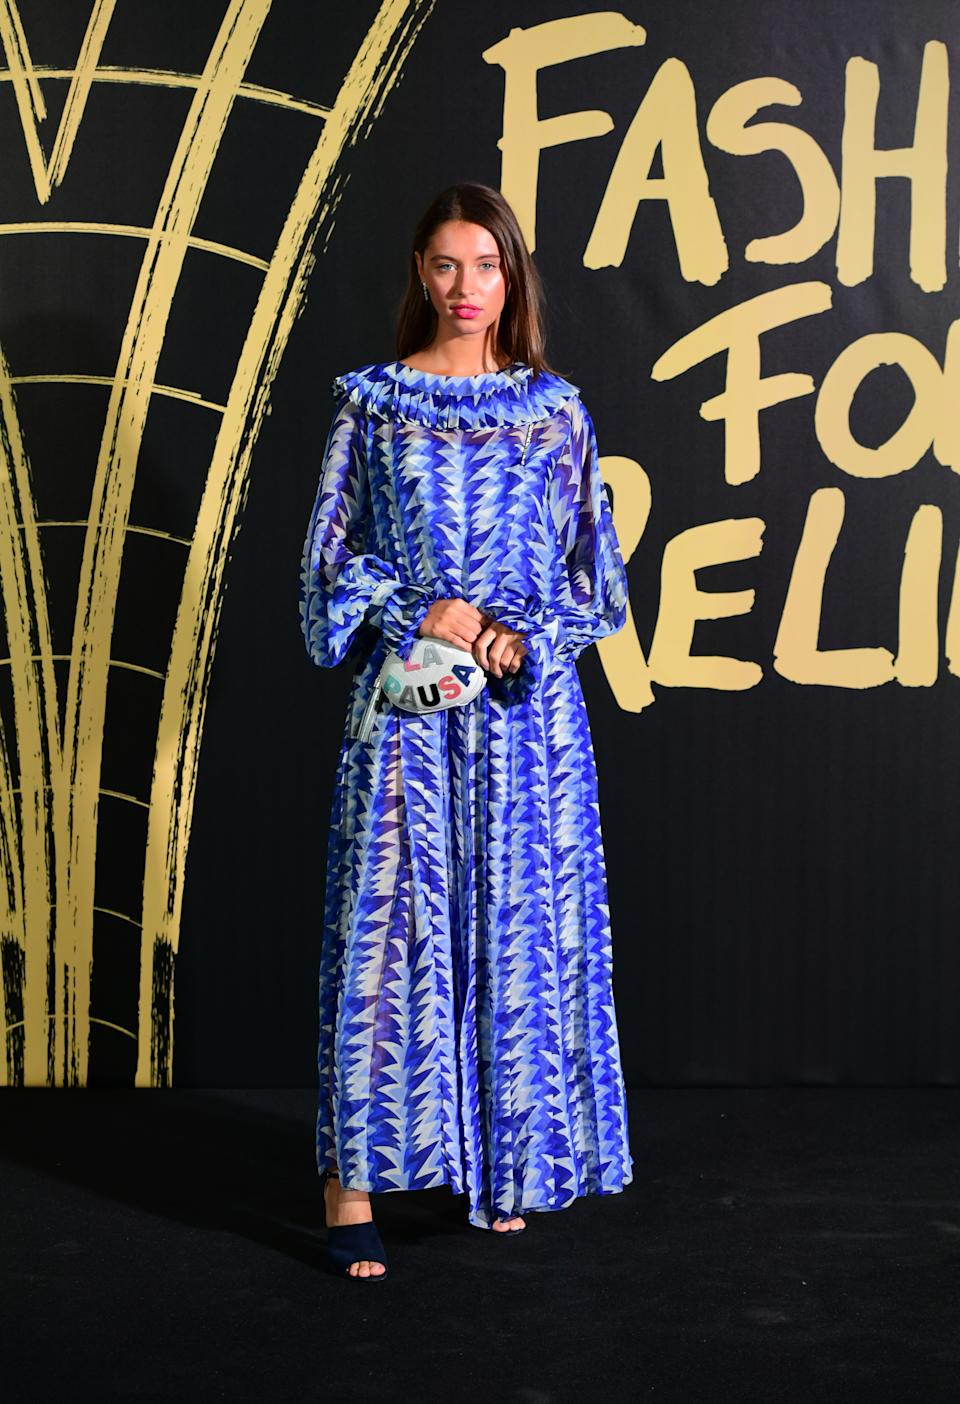 Iris Law arriving on the red carpet for Naomi Campbell's Fashion For Relief Gala during London Fashion Week. [Photo: PA]